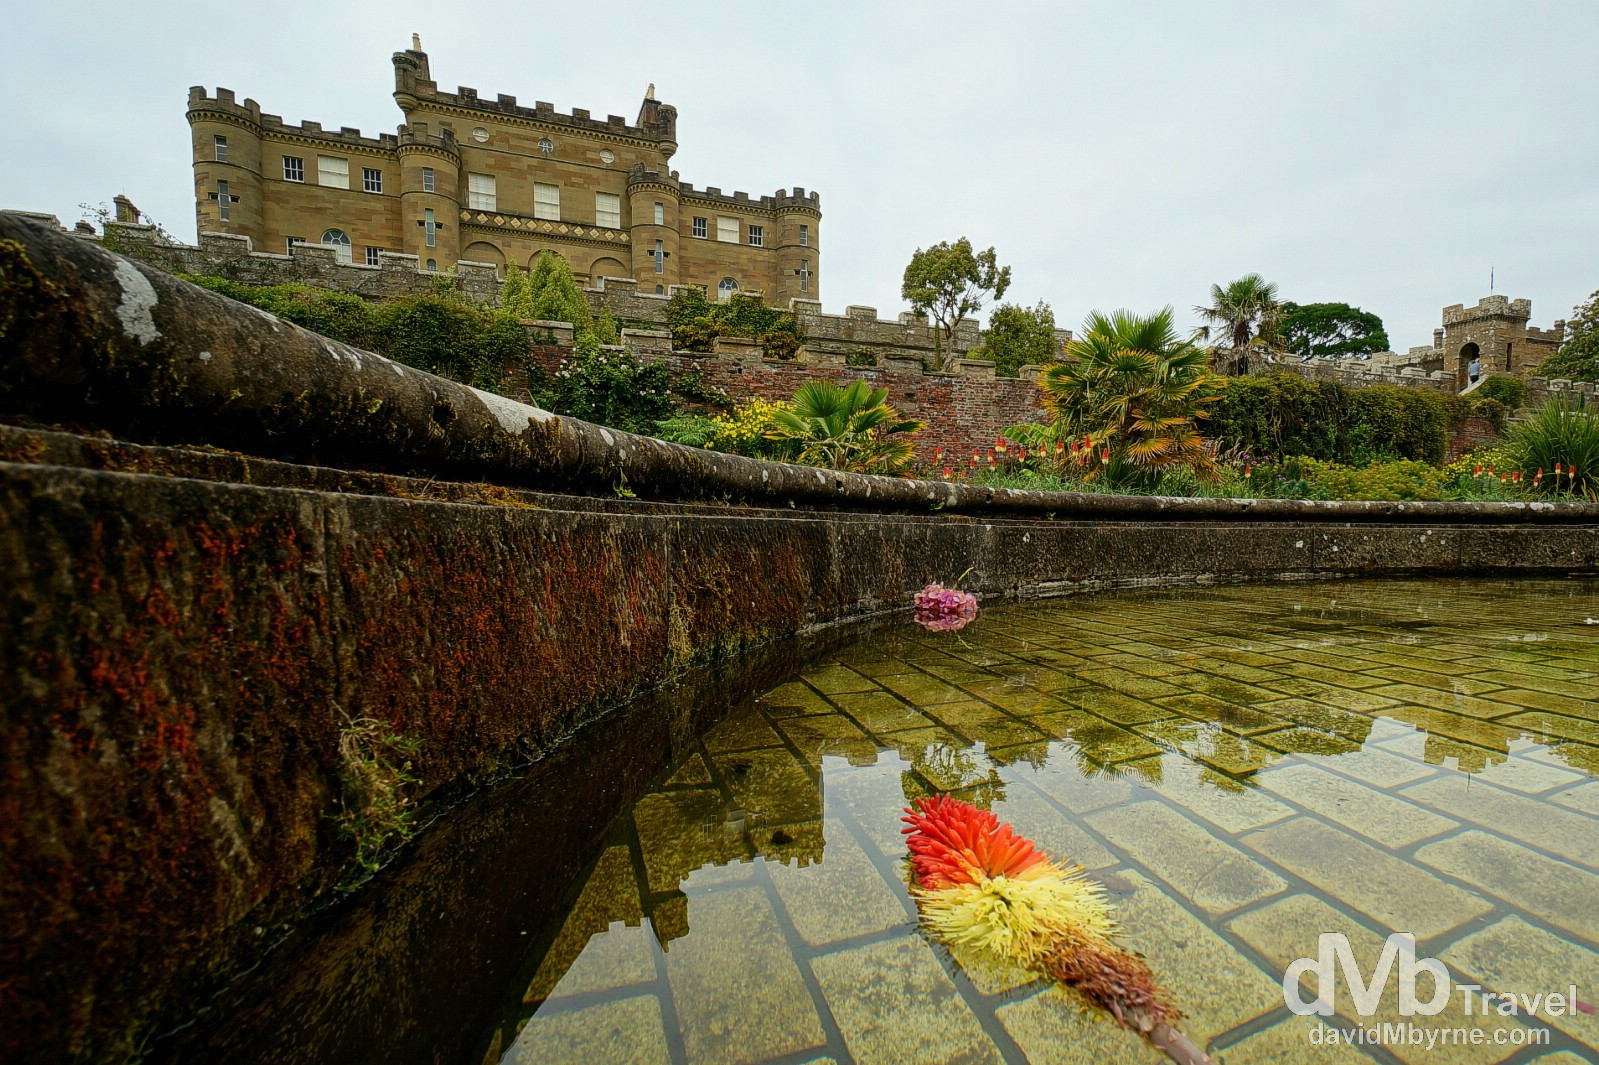 A section of the decorative water fountain fronting Culzean Castle, Ayrshire, Scotland. September 19, 2014.